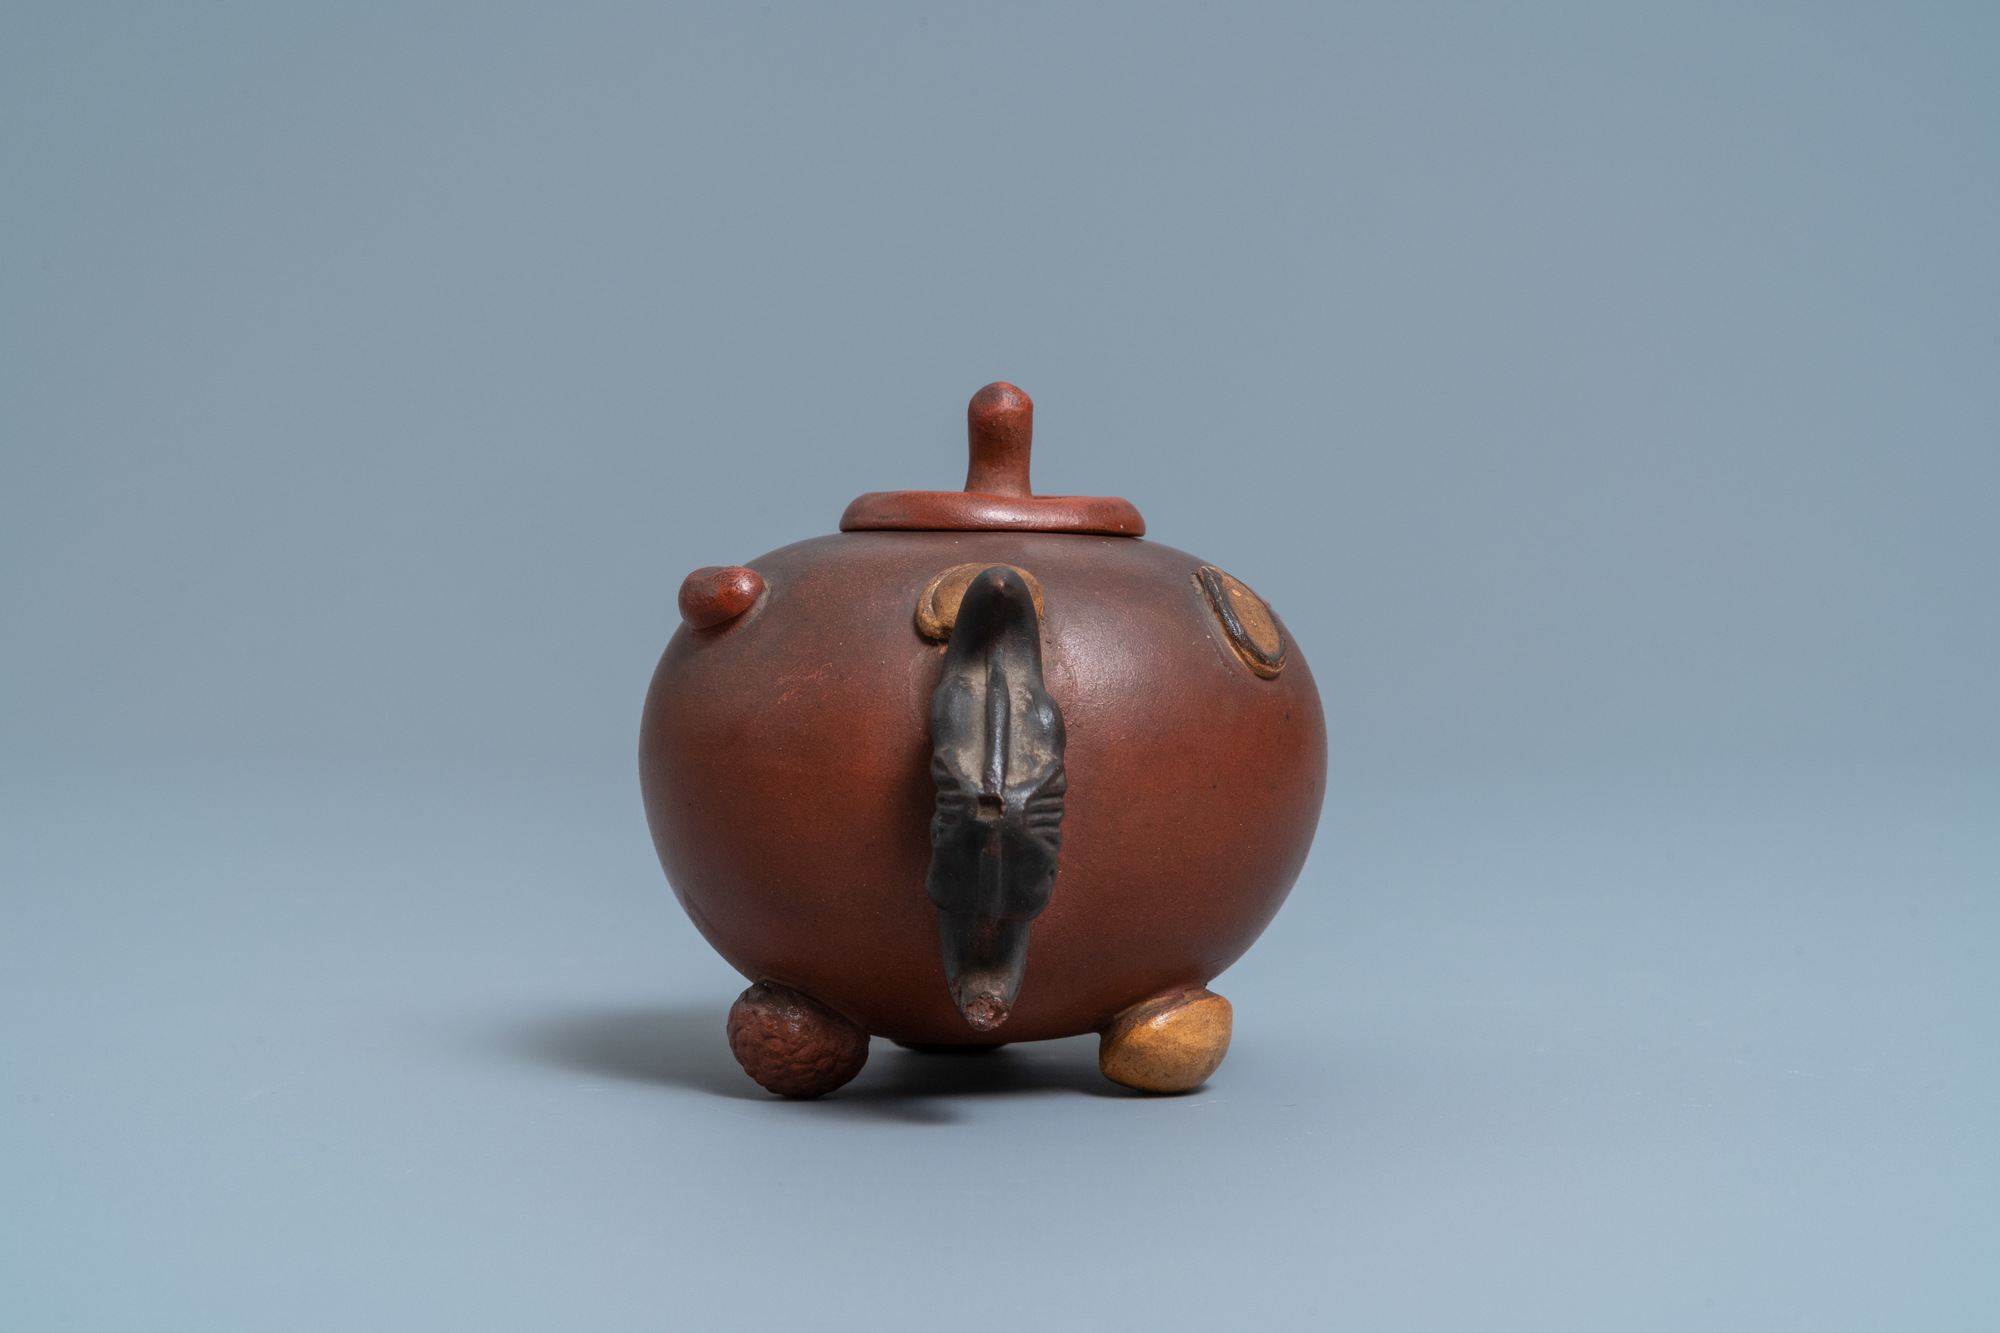 A Chinese Yixing stoneware teapot and cover with applied nuts, 19/20th C. - Image 5 of 7